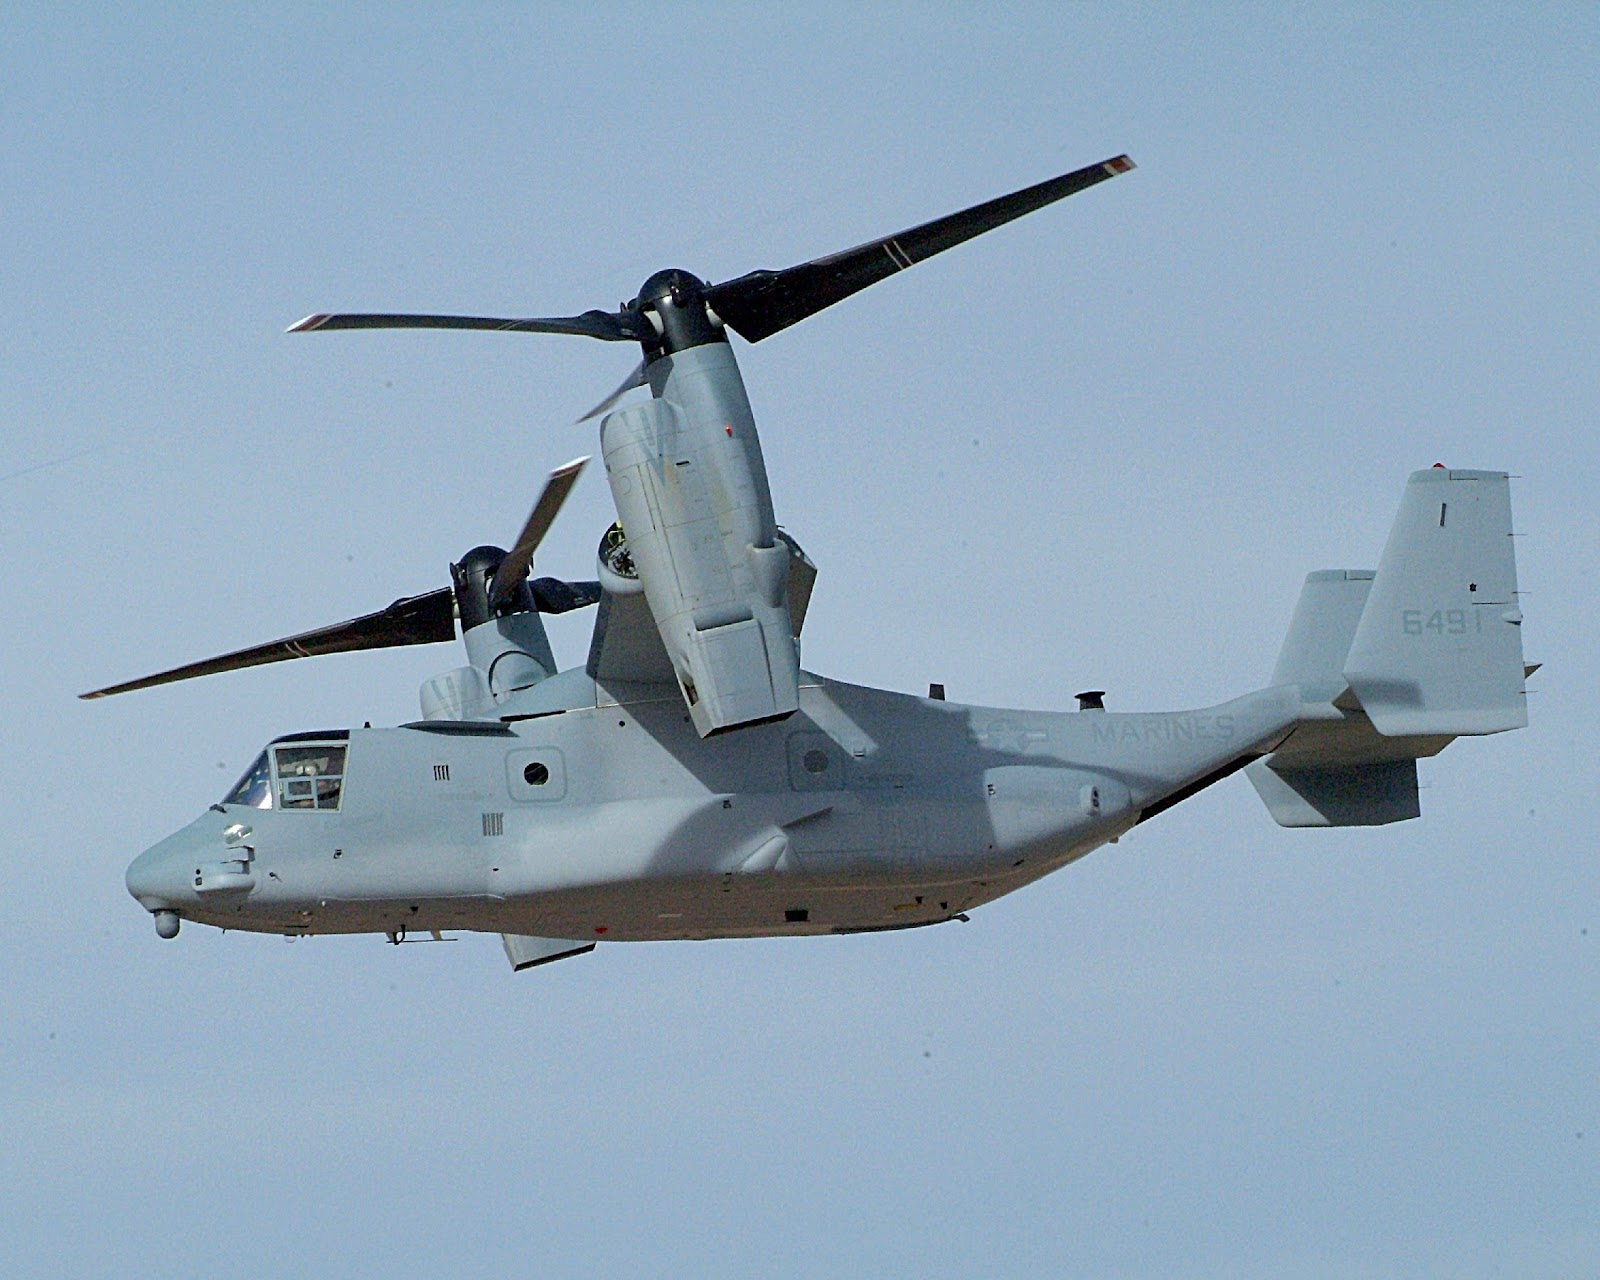 Elicottero Osprey : Naval open source intelligence japan aims to purchase